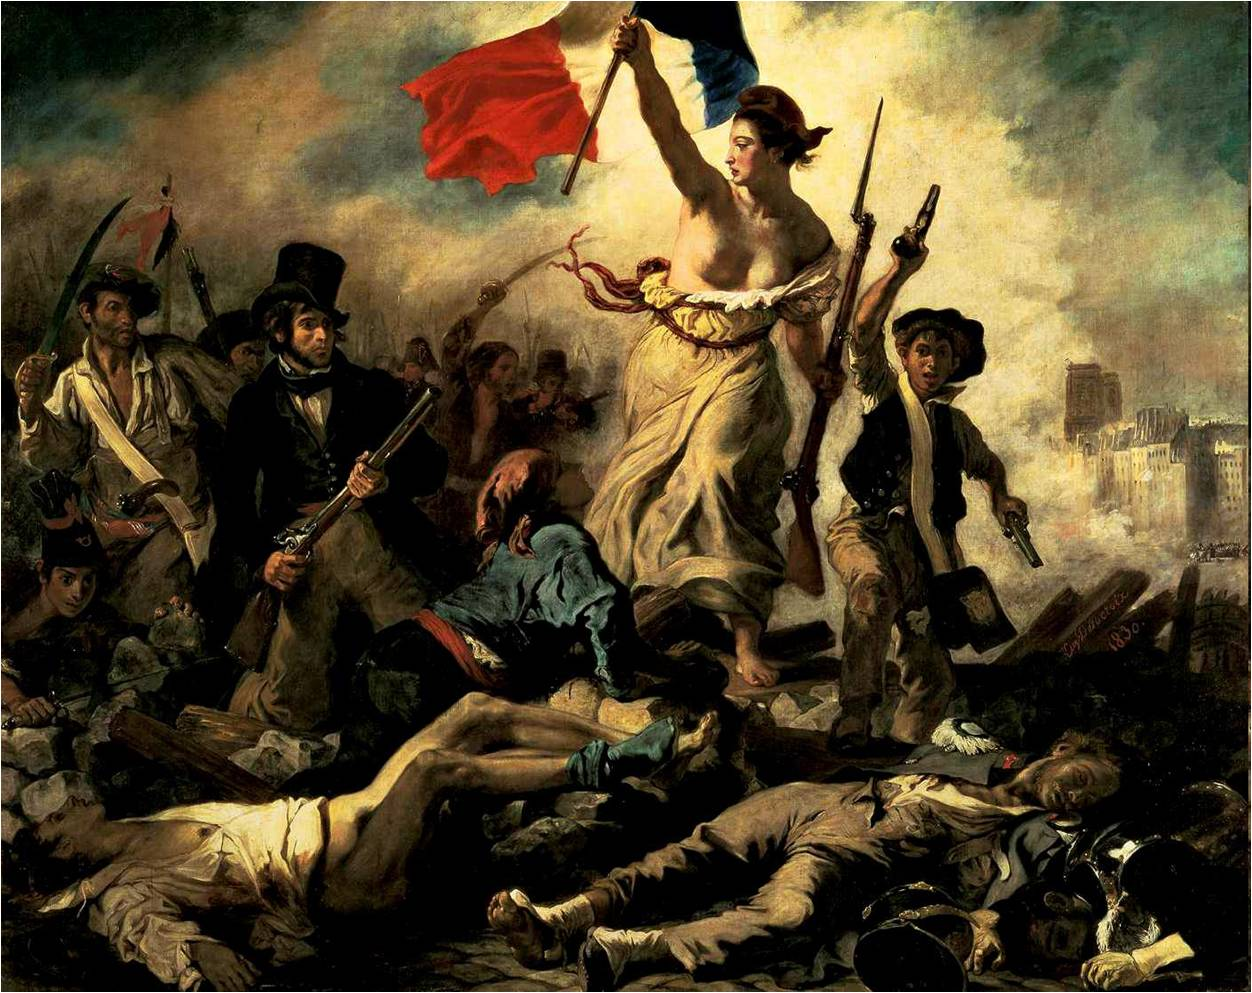 The Liberty Leading the People by Eugène Delacroix Reproduction Painting by Blue Surf Art